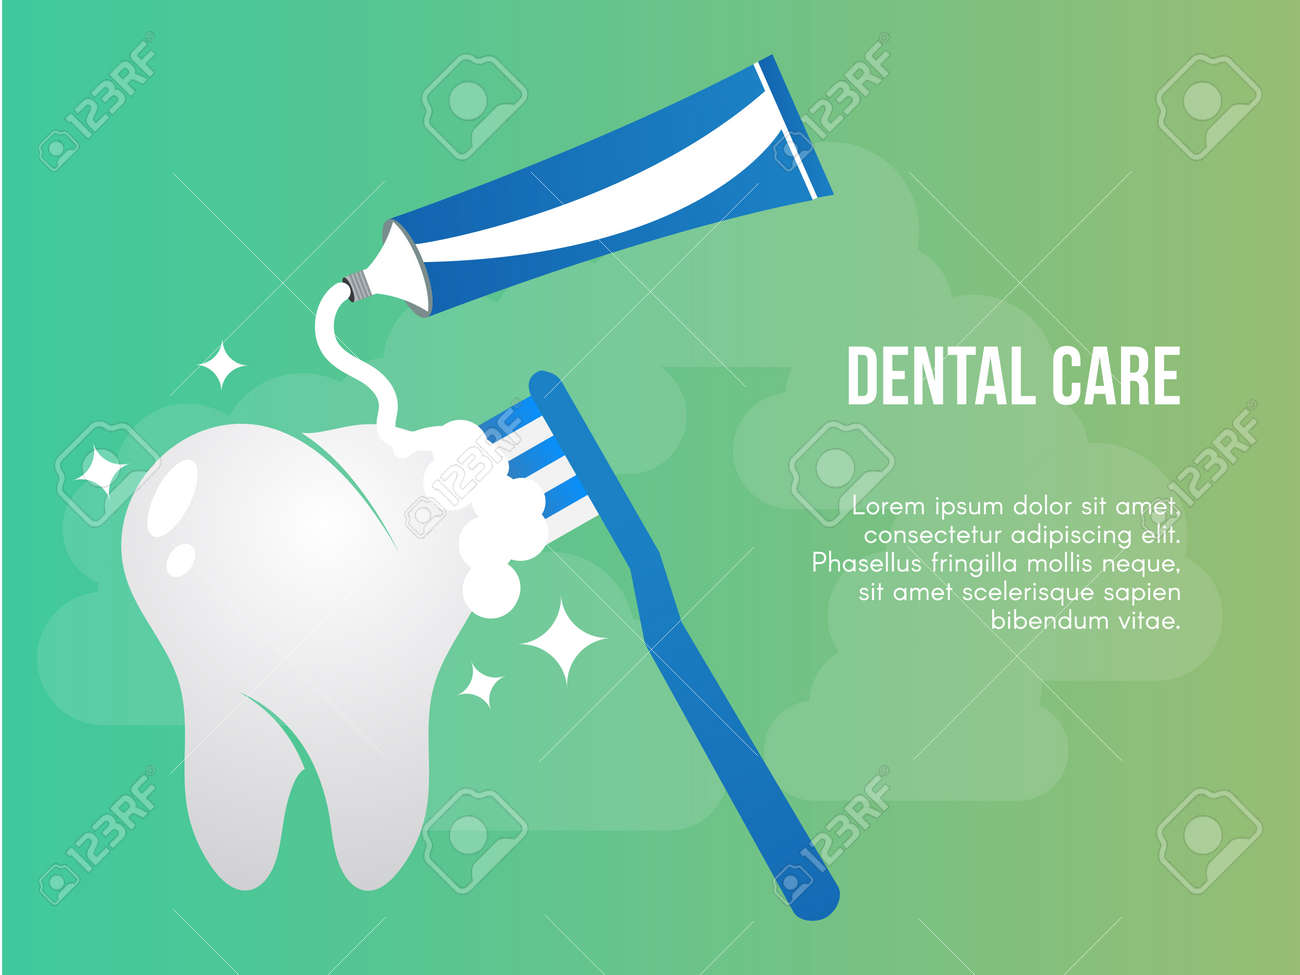 Dental Care Concept Ready To Use Vector Illustration Suitable Royalty Free Cliparts Vectors And Stock Illustration Image 110625186